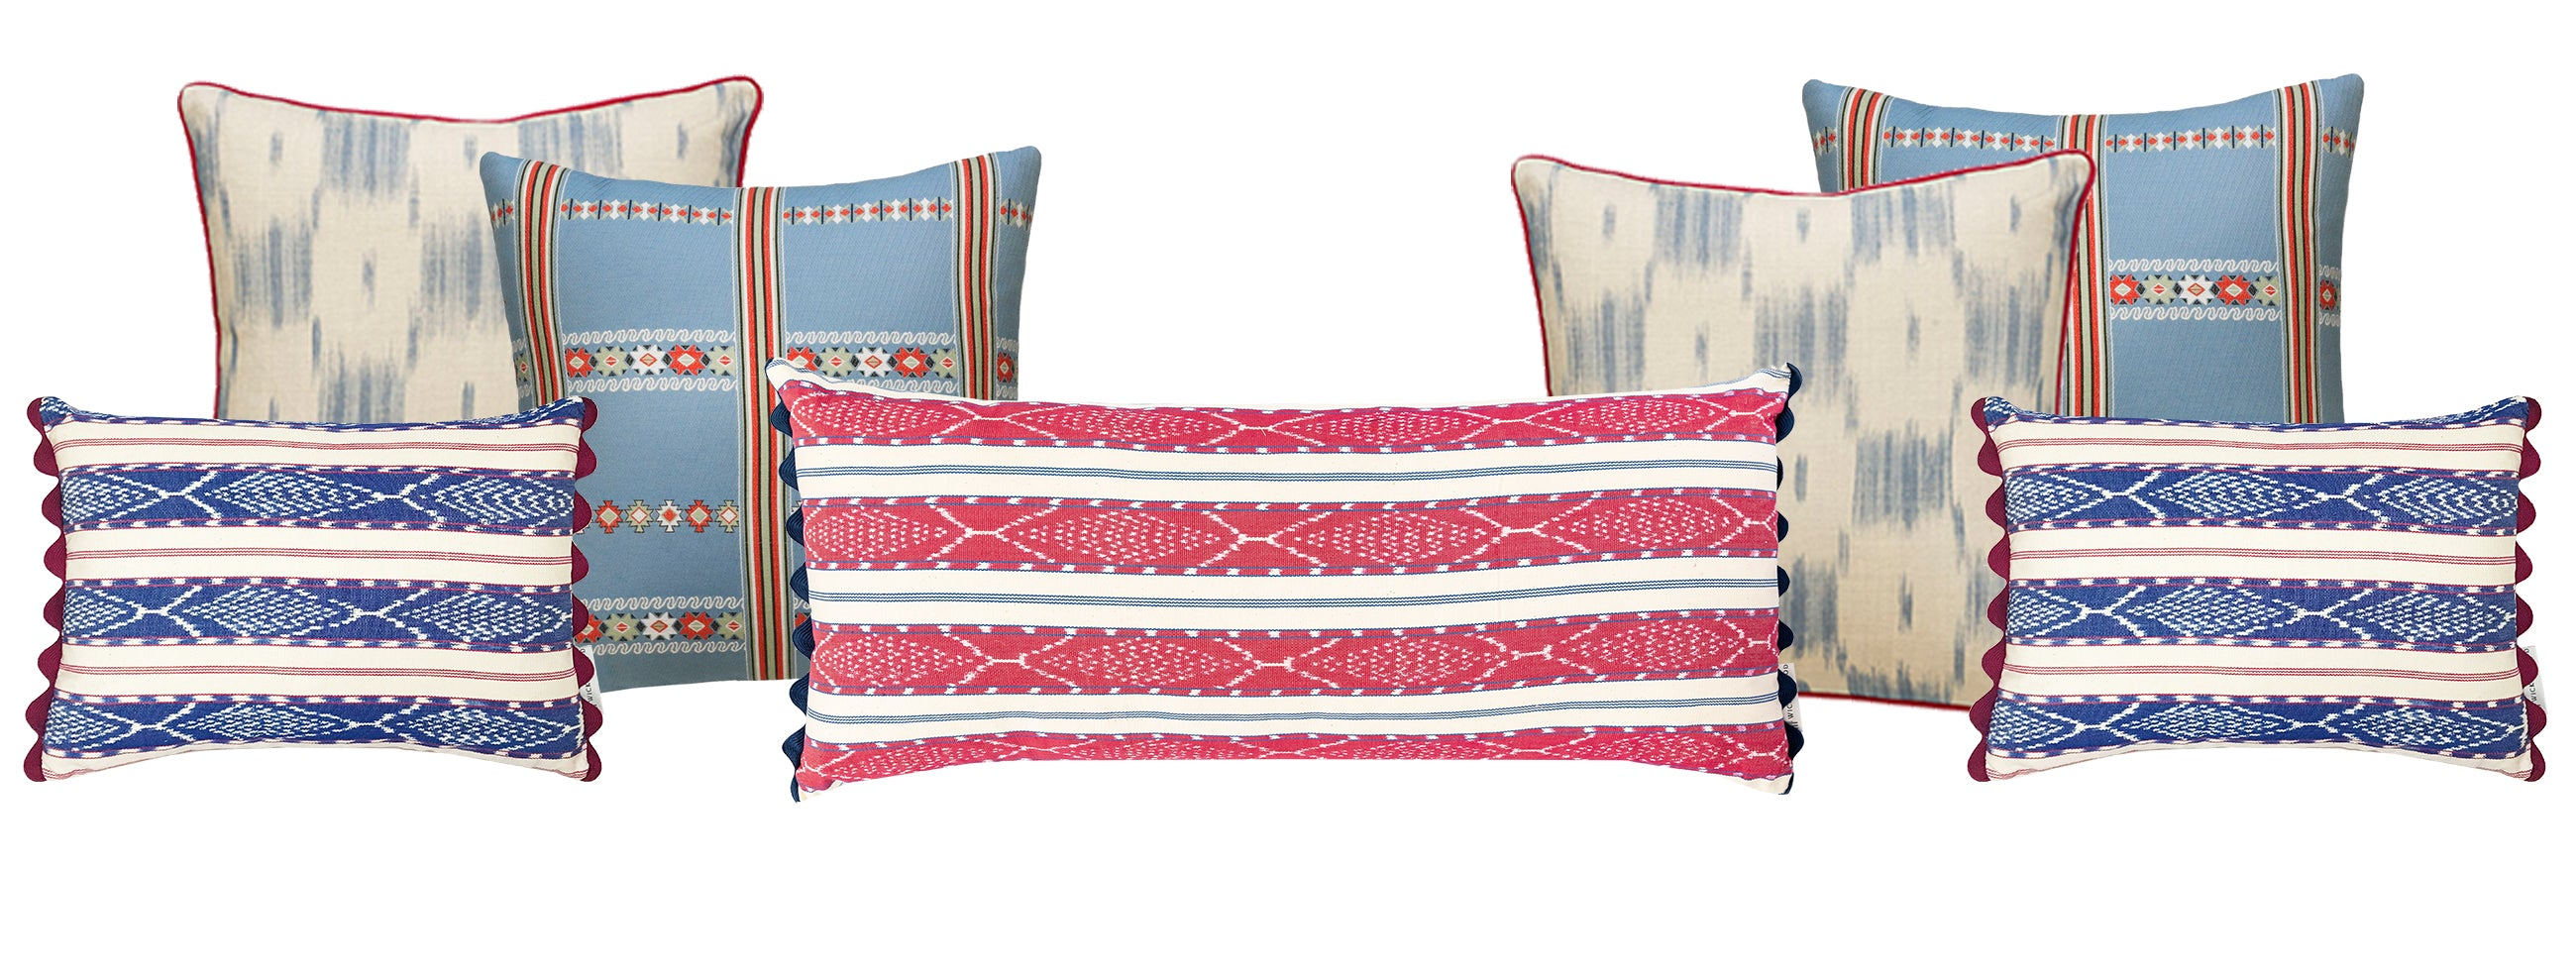 Wiggy Hindmarch's favourite Wicklewood cushions